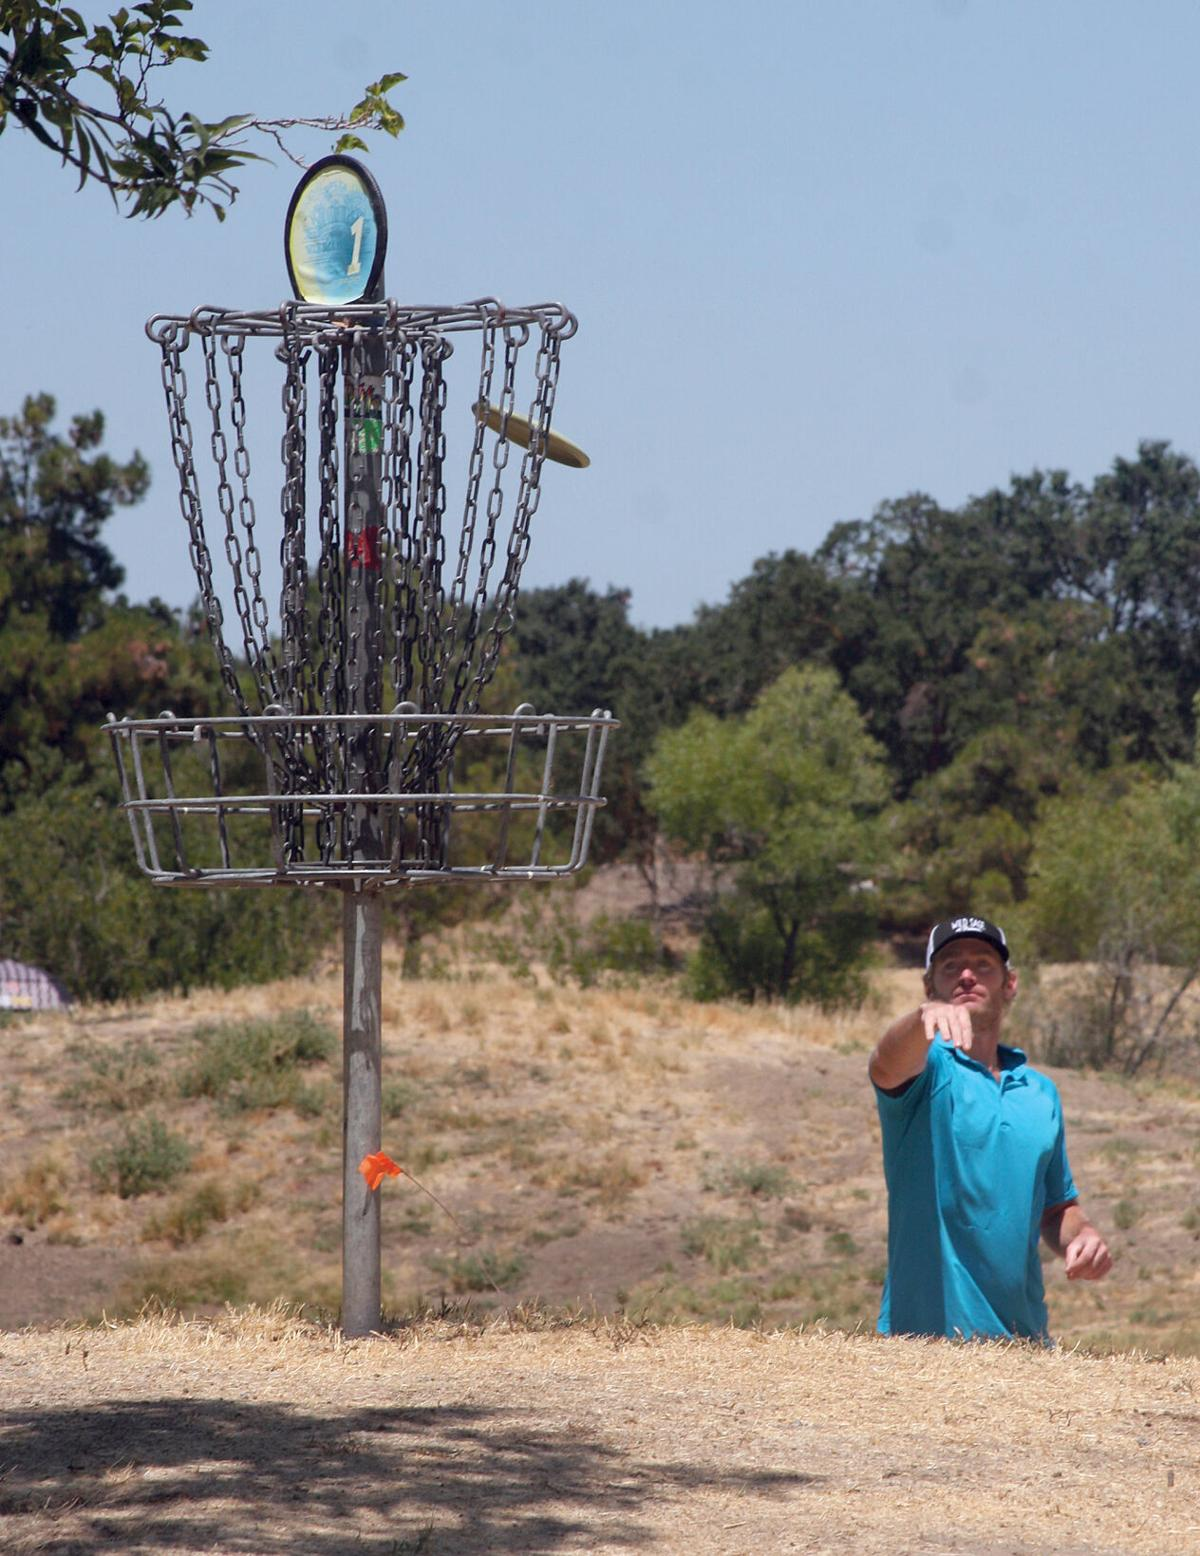 Disc golf at Old River